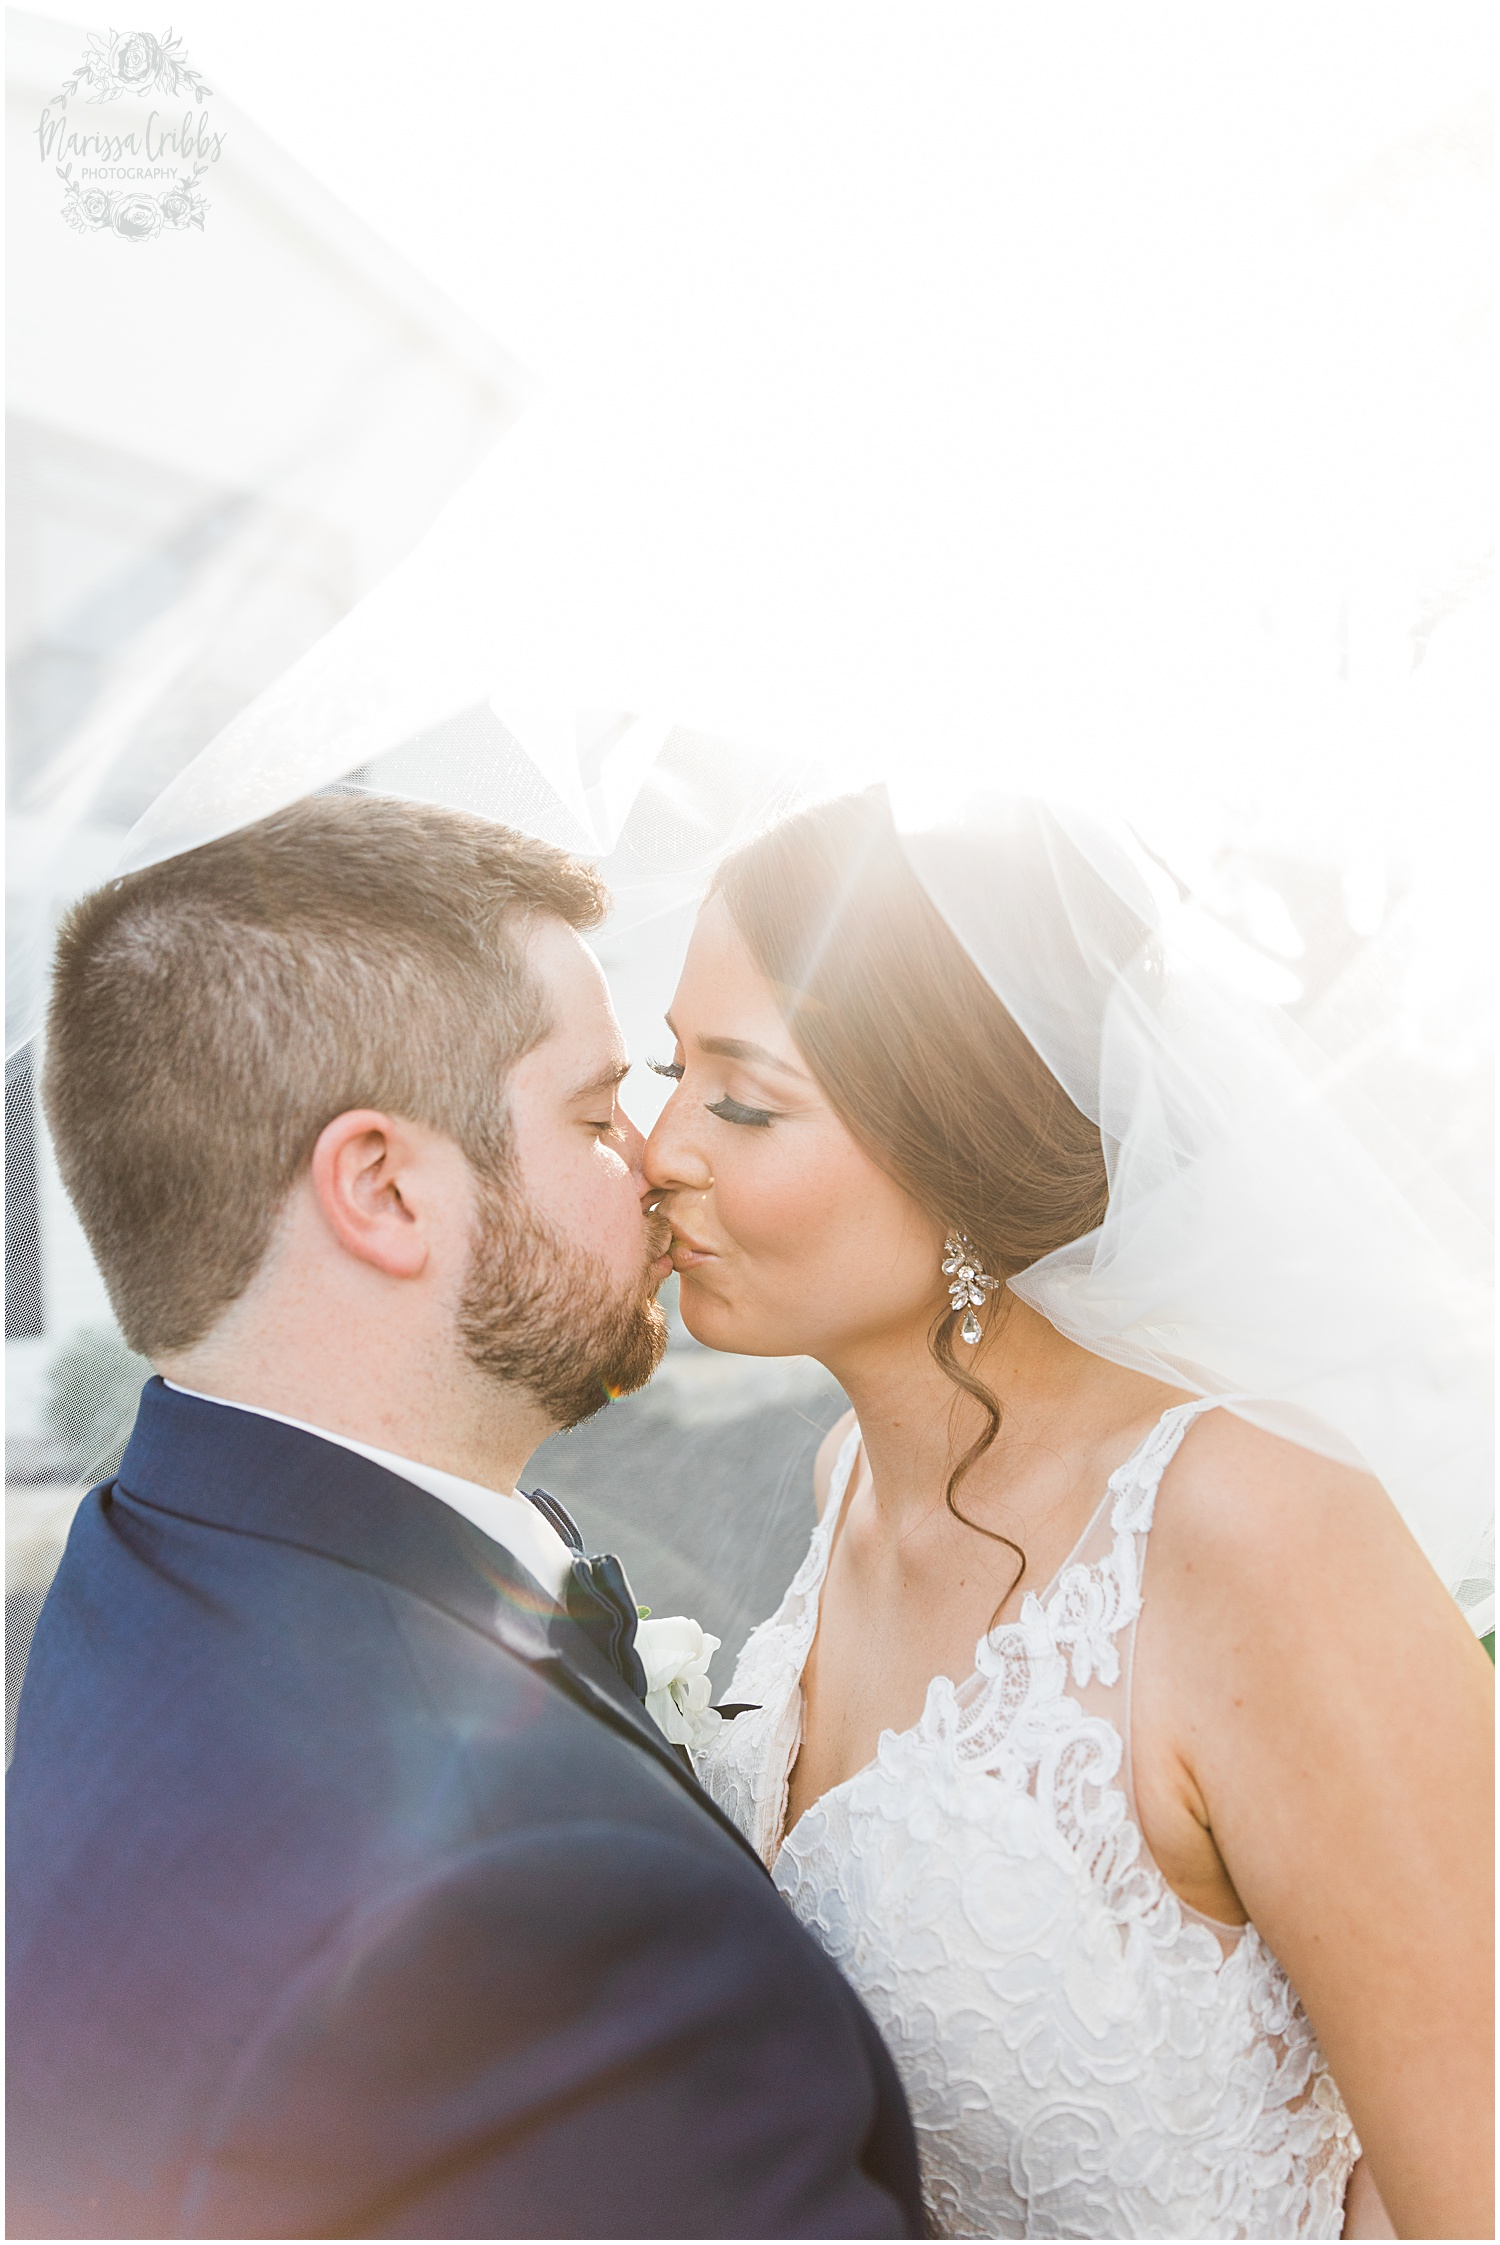 JESSICA & MARK MARRIED SNEAK PEEKS | 1890 EVENT SPACE WEDDING | MARISSA CRIBBS PHOTOGRAPHY_7885.jpg